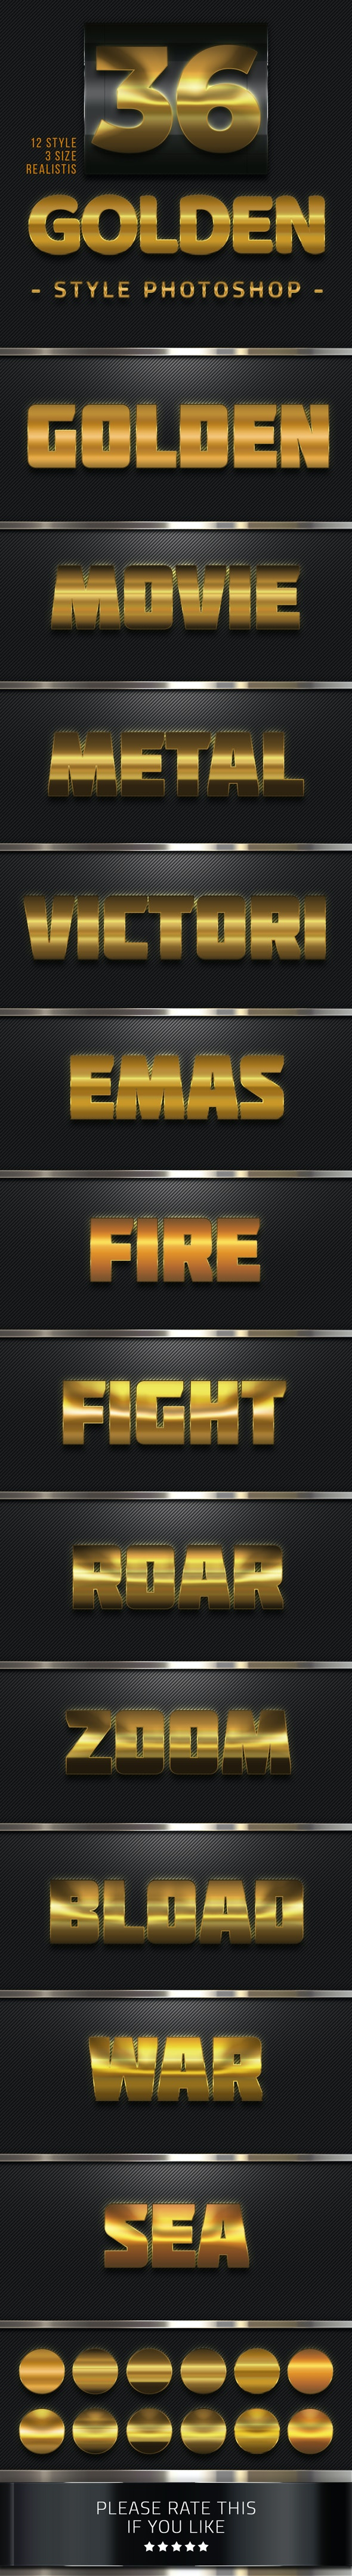 36 Golden Style Photoshop - Text Effects Styles